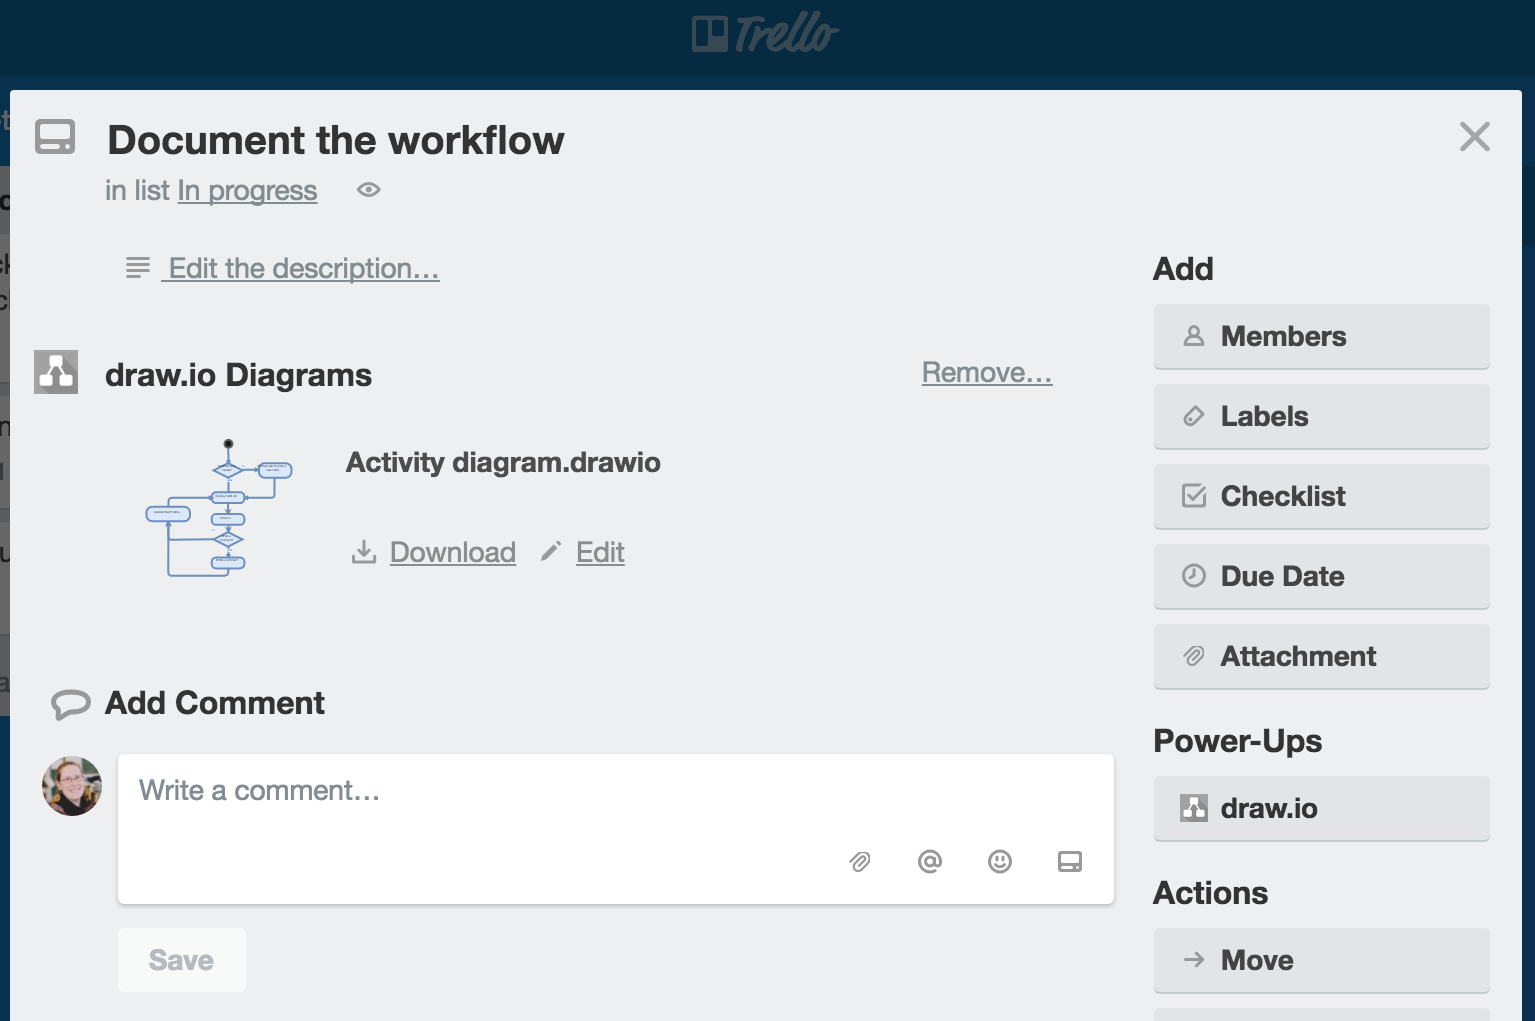 draw.io diagram within a Trello card